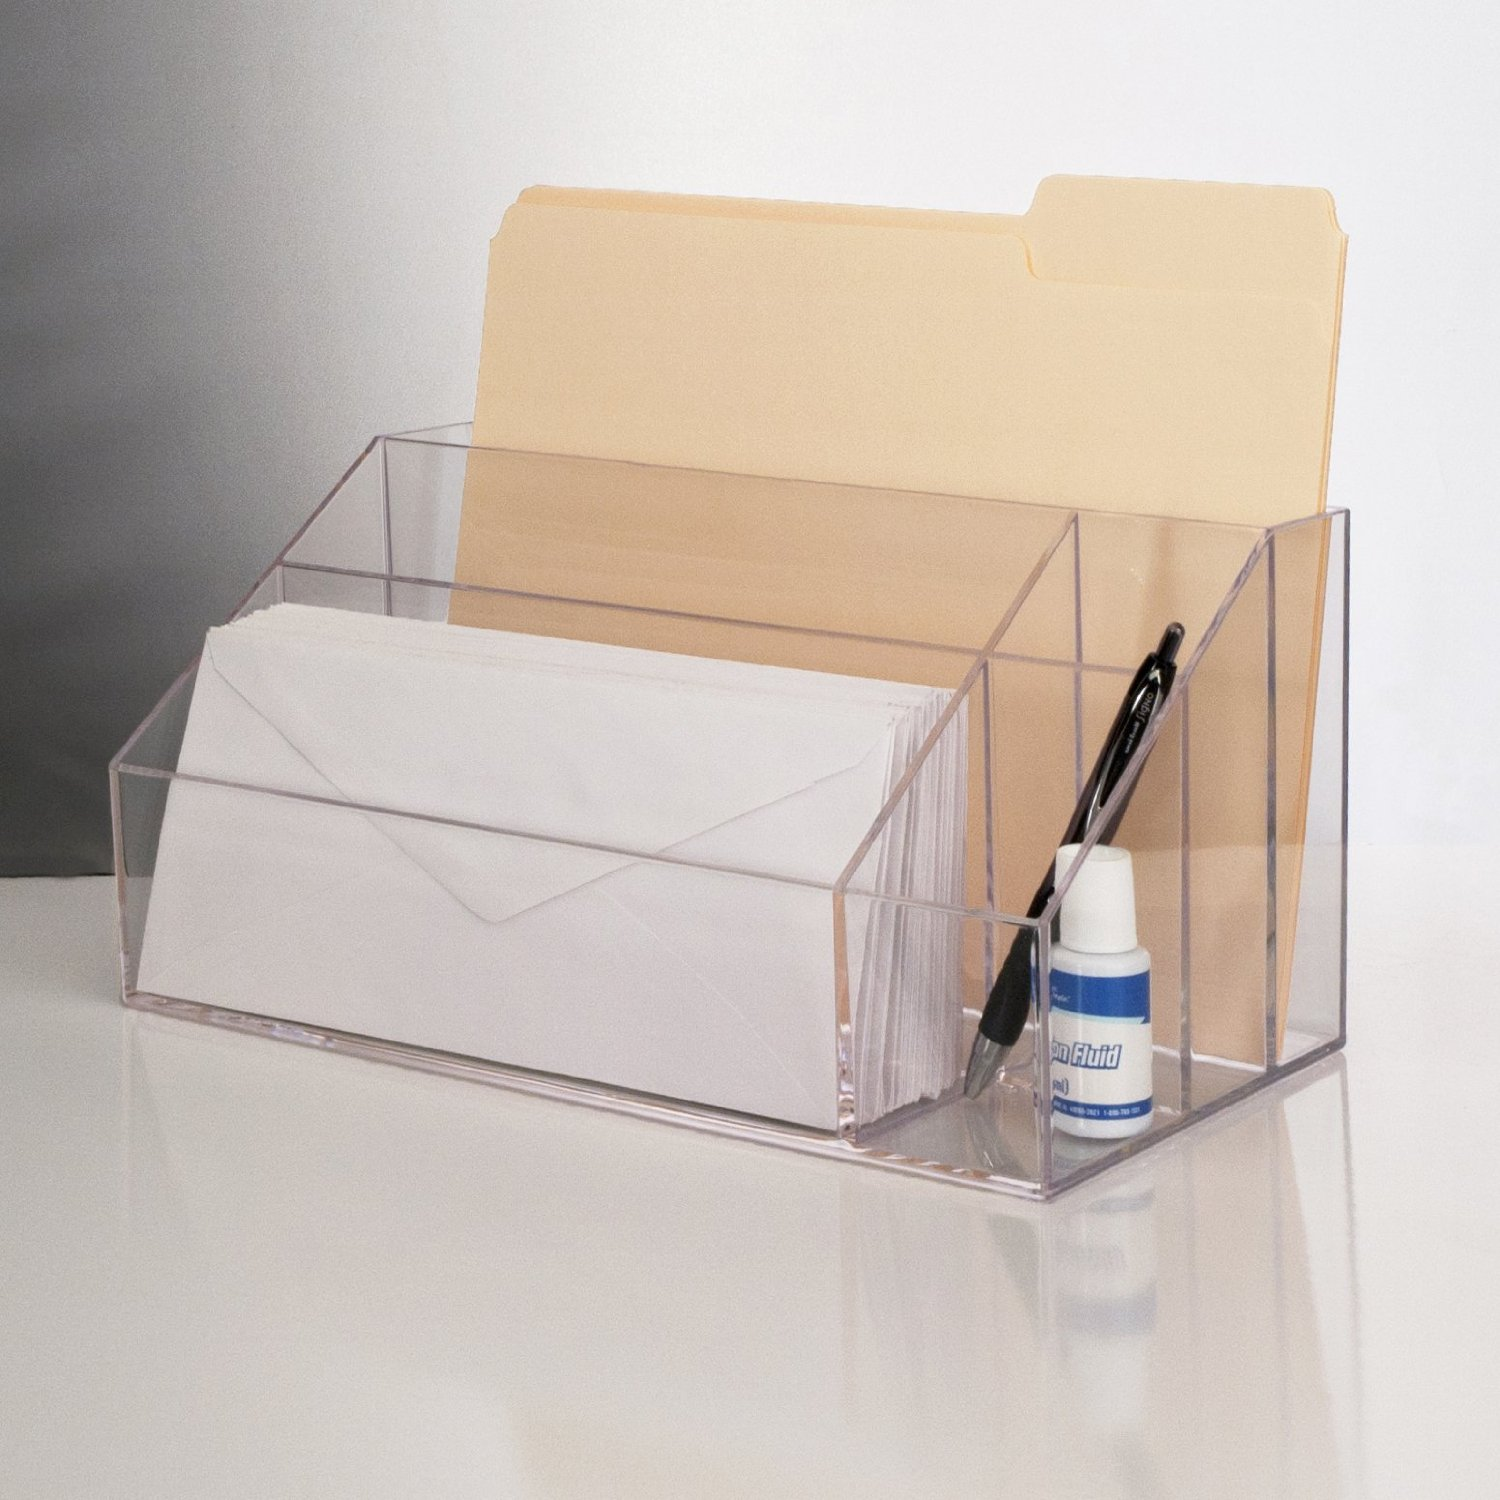 Desktop Mail Center / Organizer